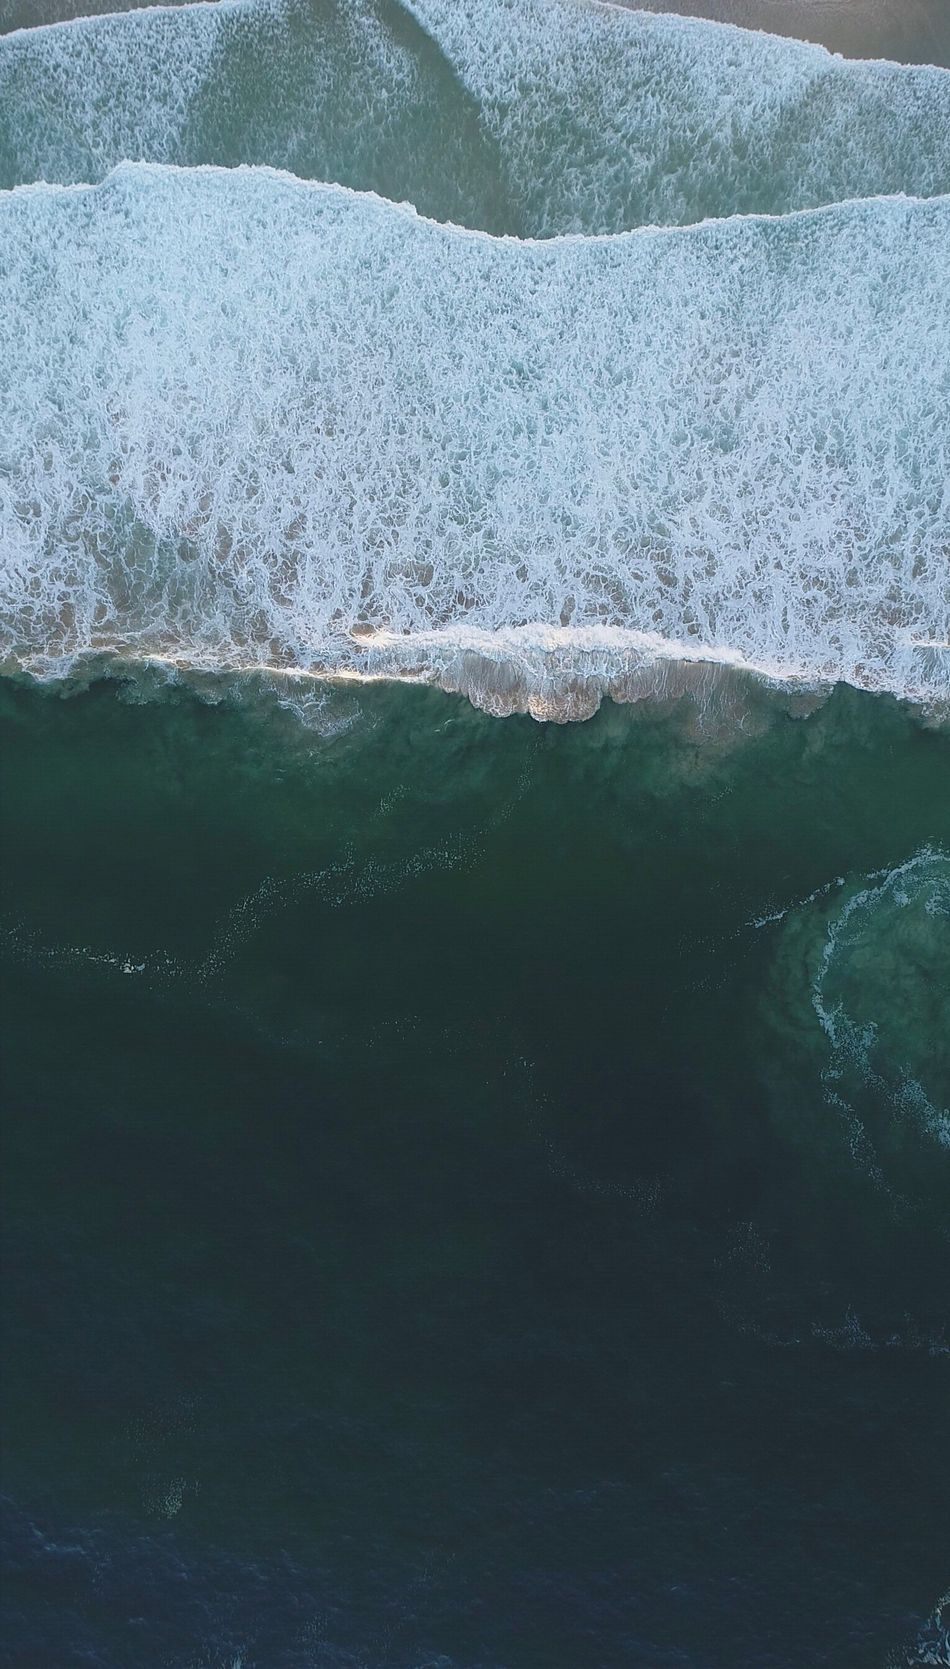 Waves 🌊 from the top. ( Drone  Drone) Water Beauty In Nature Ice Nature Tranquil Scene Tranquility No People Scenics Waterfront Lake Frozen Day Outdoors Cold Temperature Glacier Winter Iceberg Close-up Dronephotography Droneshot